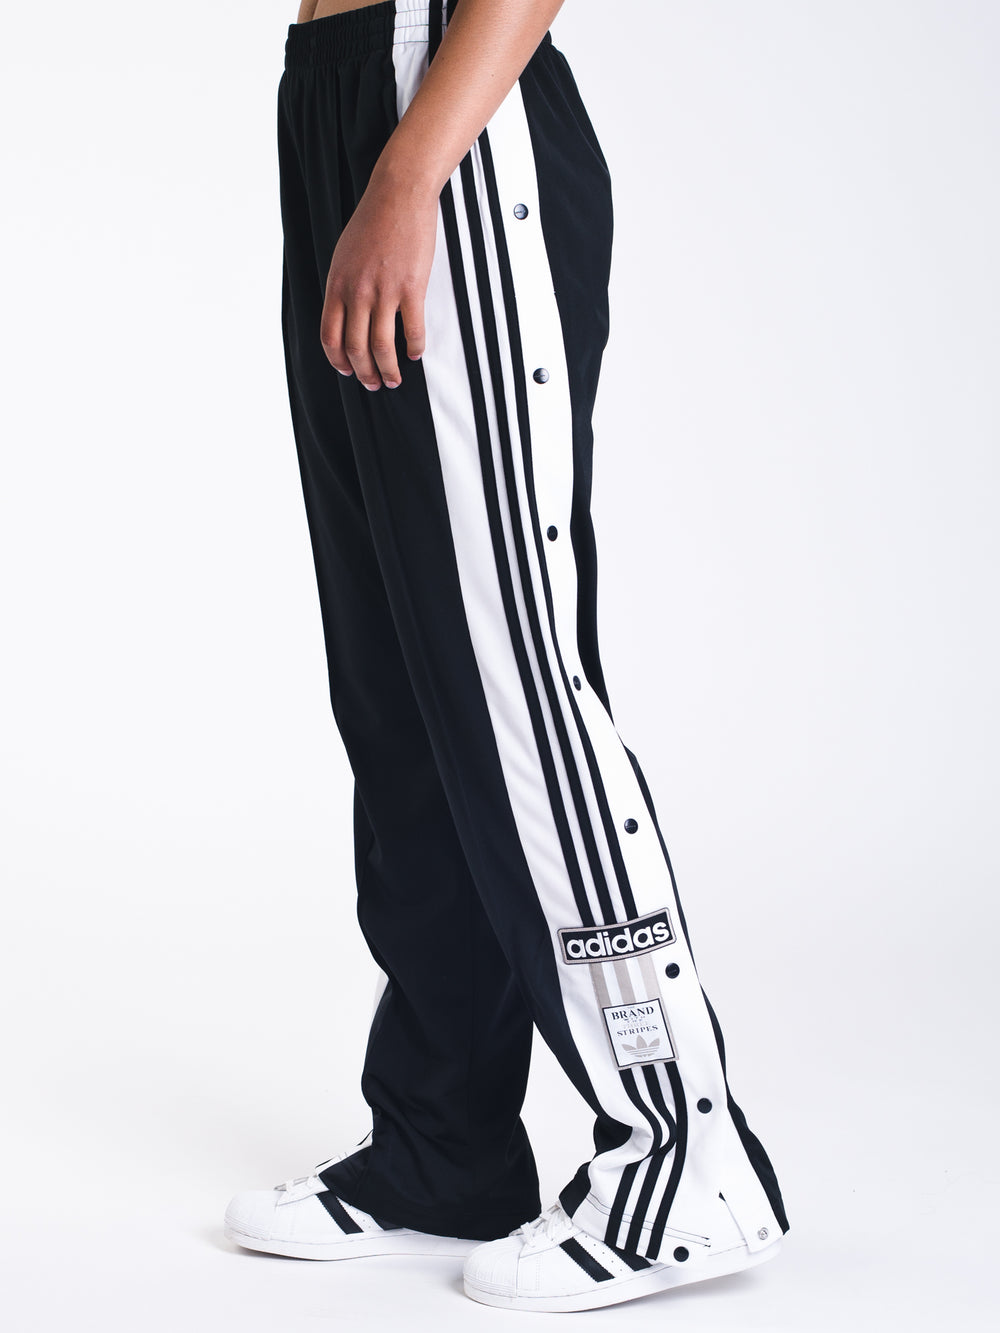 WOMENS OG ADIBREAK TRACK PANT - CLEARANCE